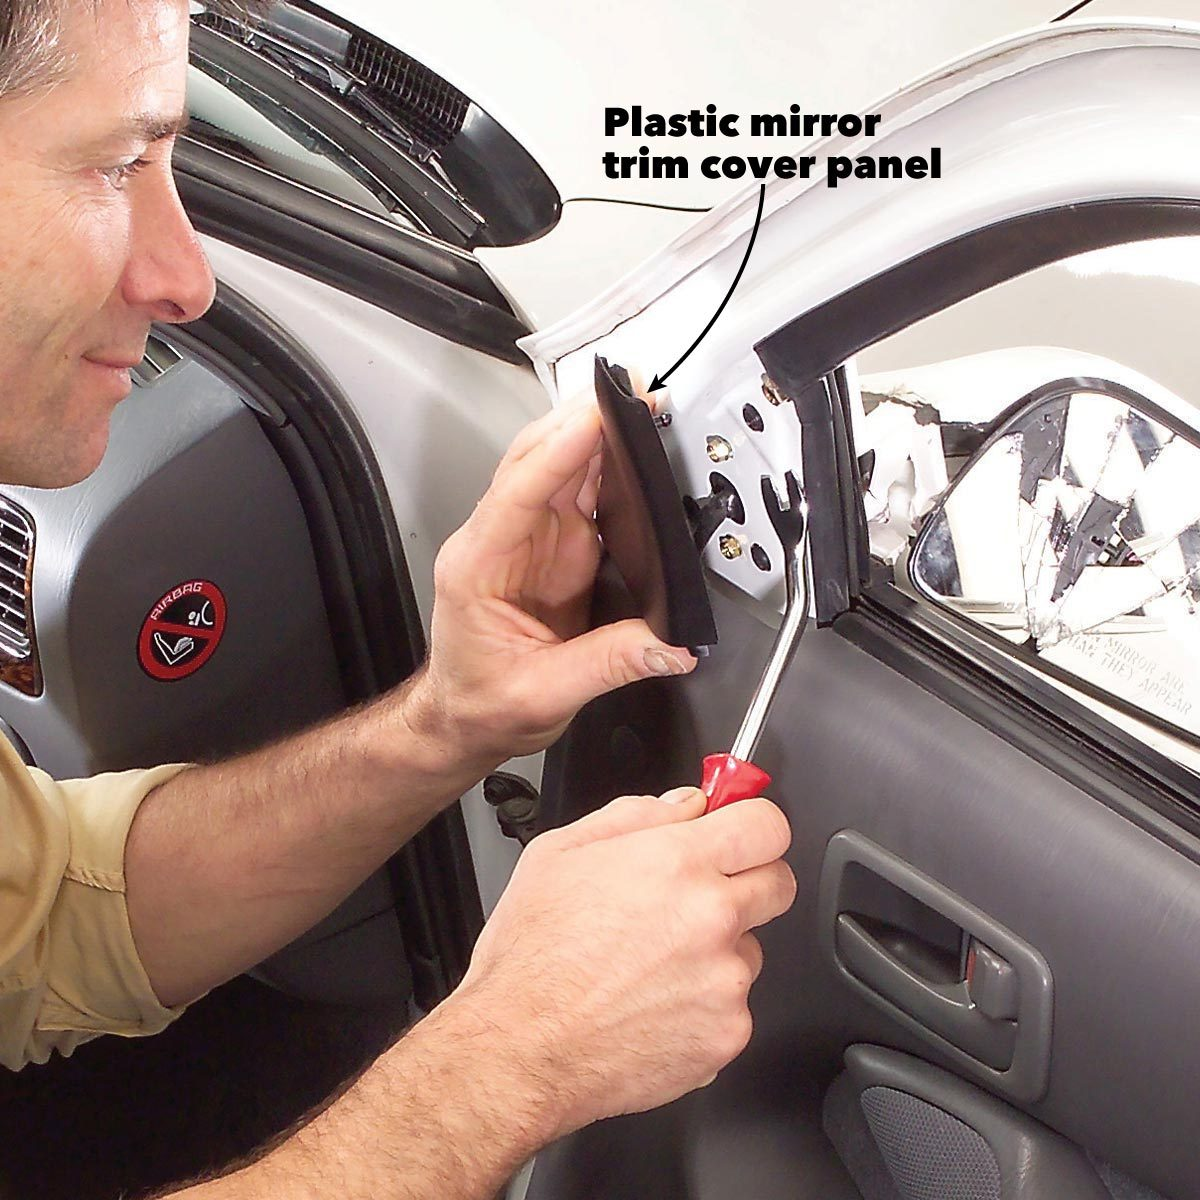 hight resolution of remove the side view mirror trim panel